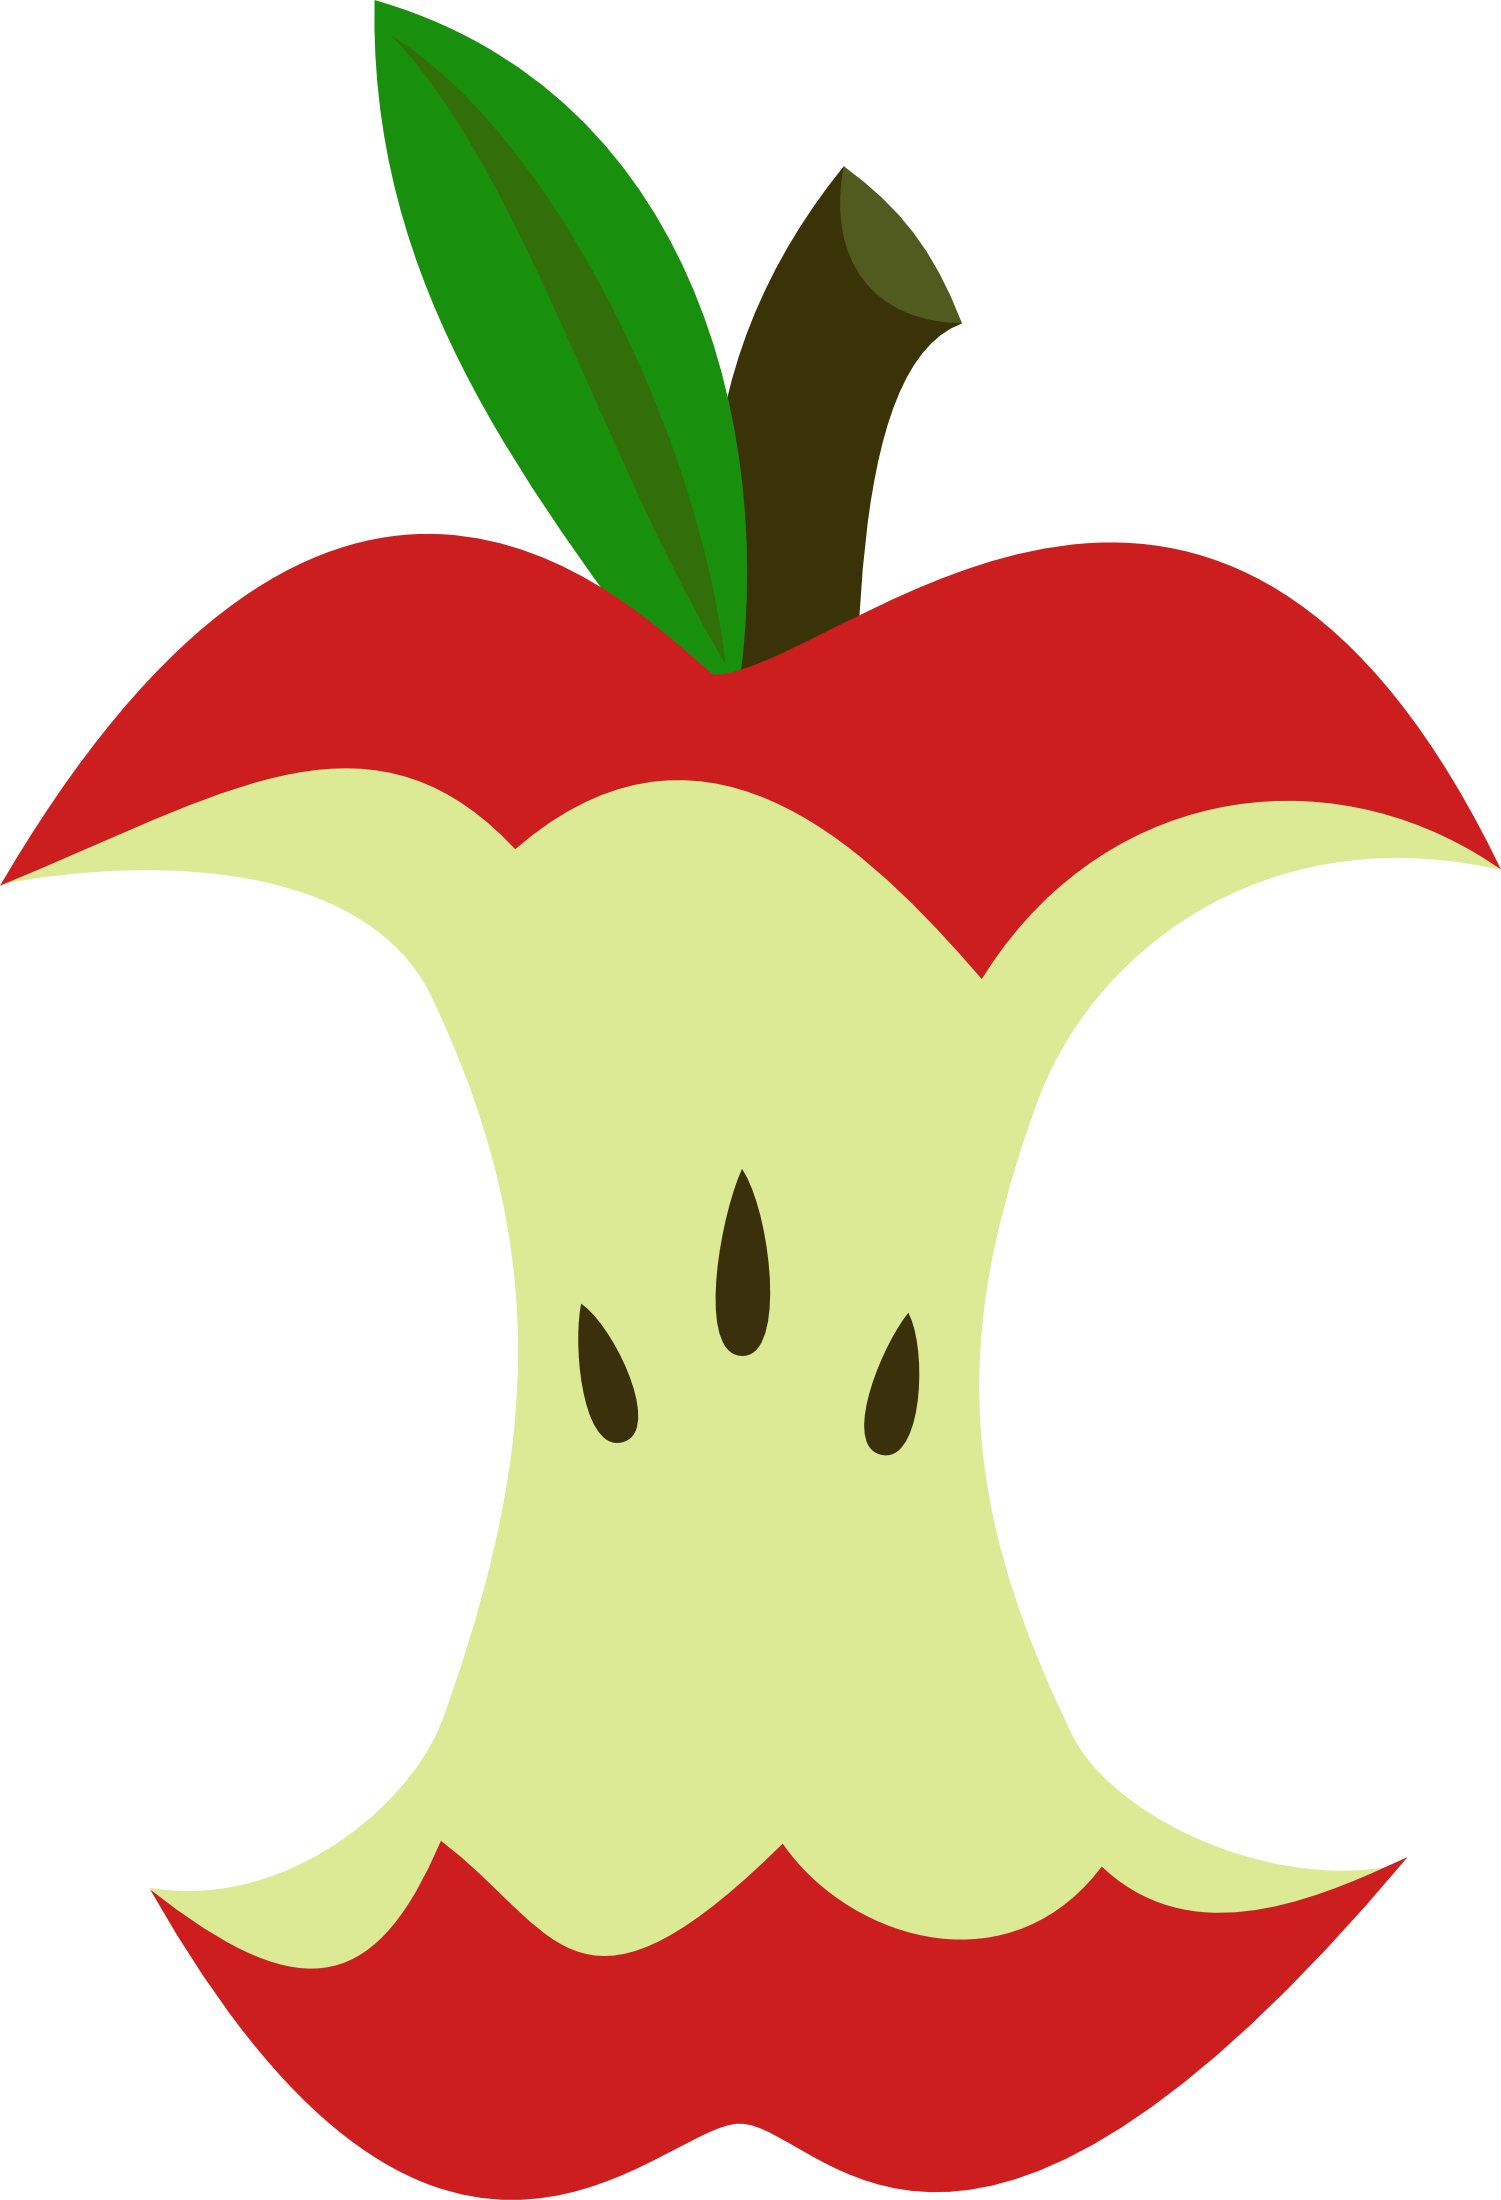 apple core png